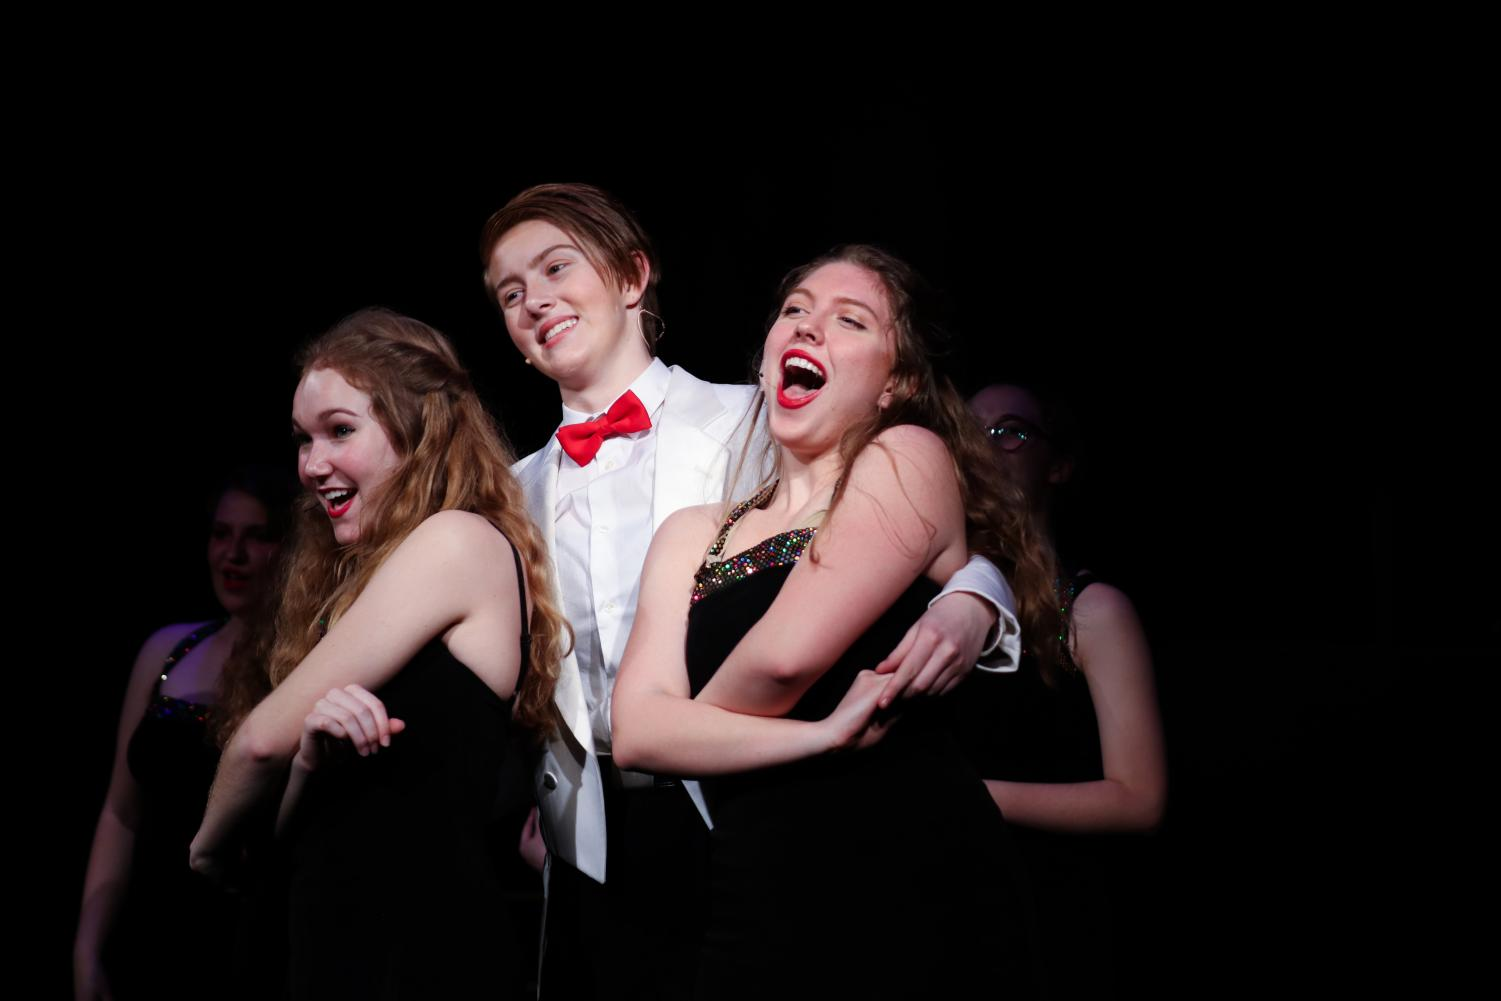 Laney+McFadden+%2720+sings+as+her+character+Billy+Flynn%2C+as+she+is+surrounded+by+members+of+the+ensemble.+